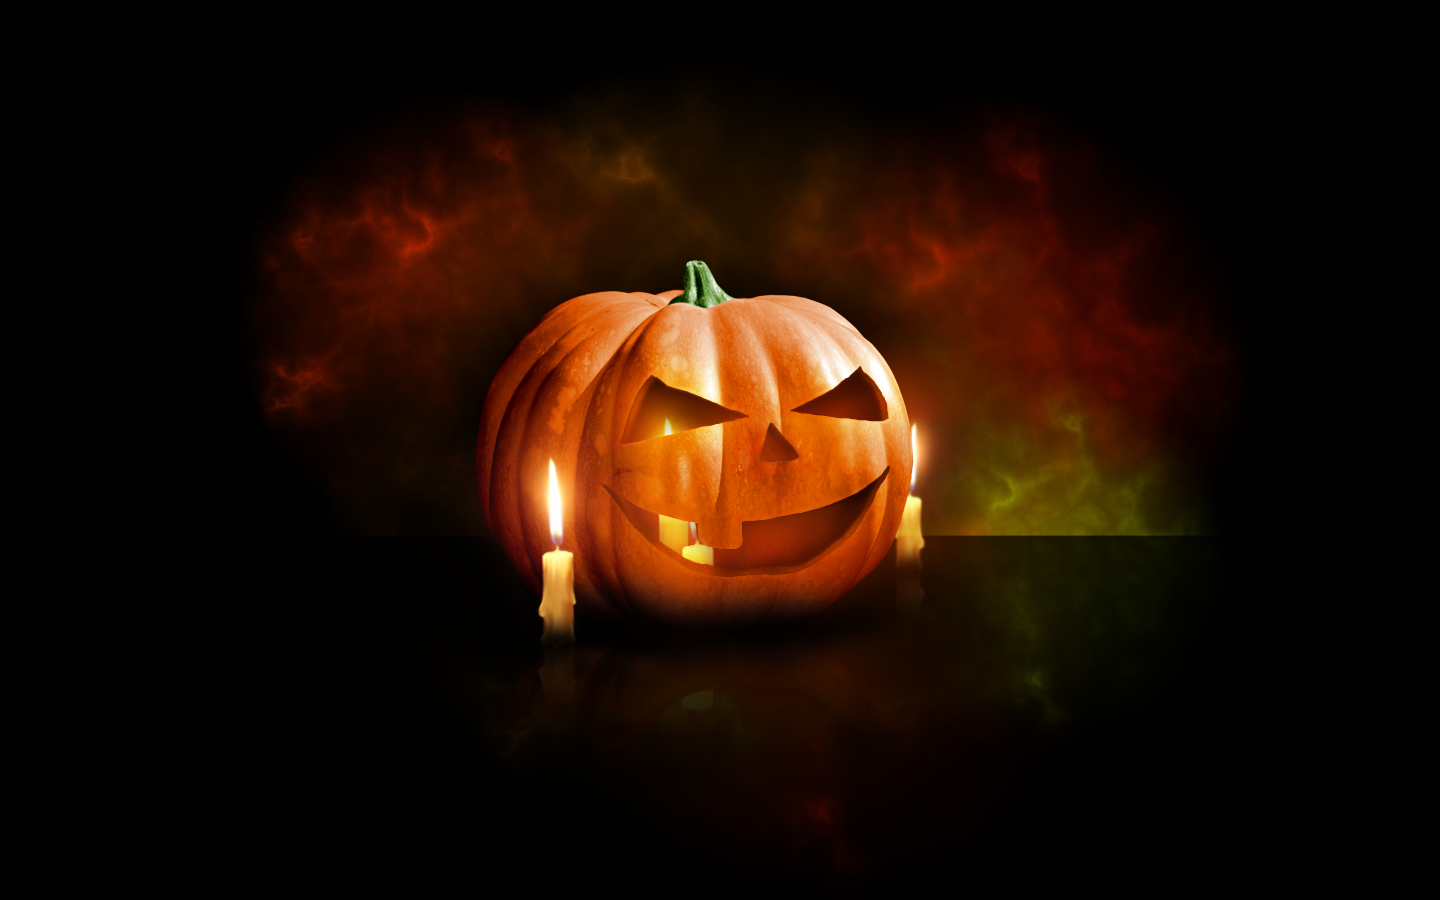 Cool Halloween Wallpapers and Halloween Icons for 1440x900